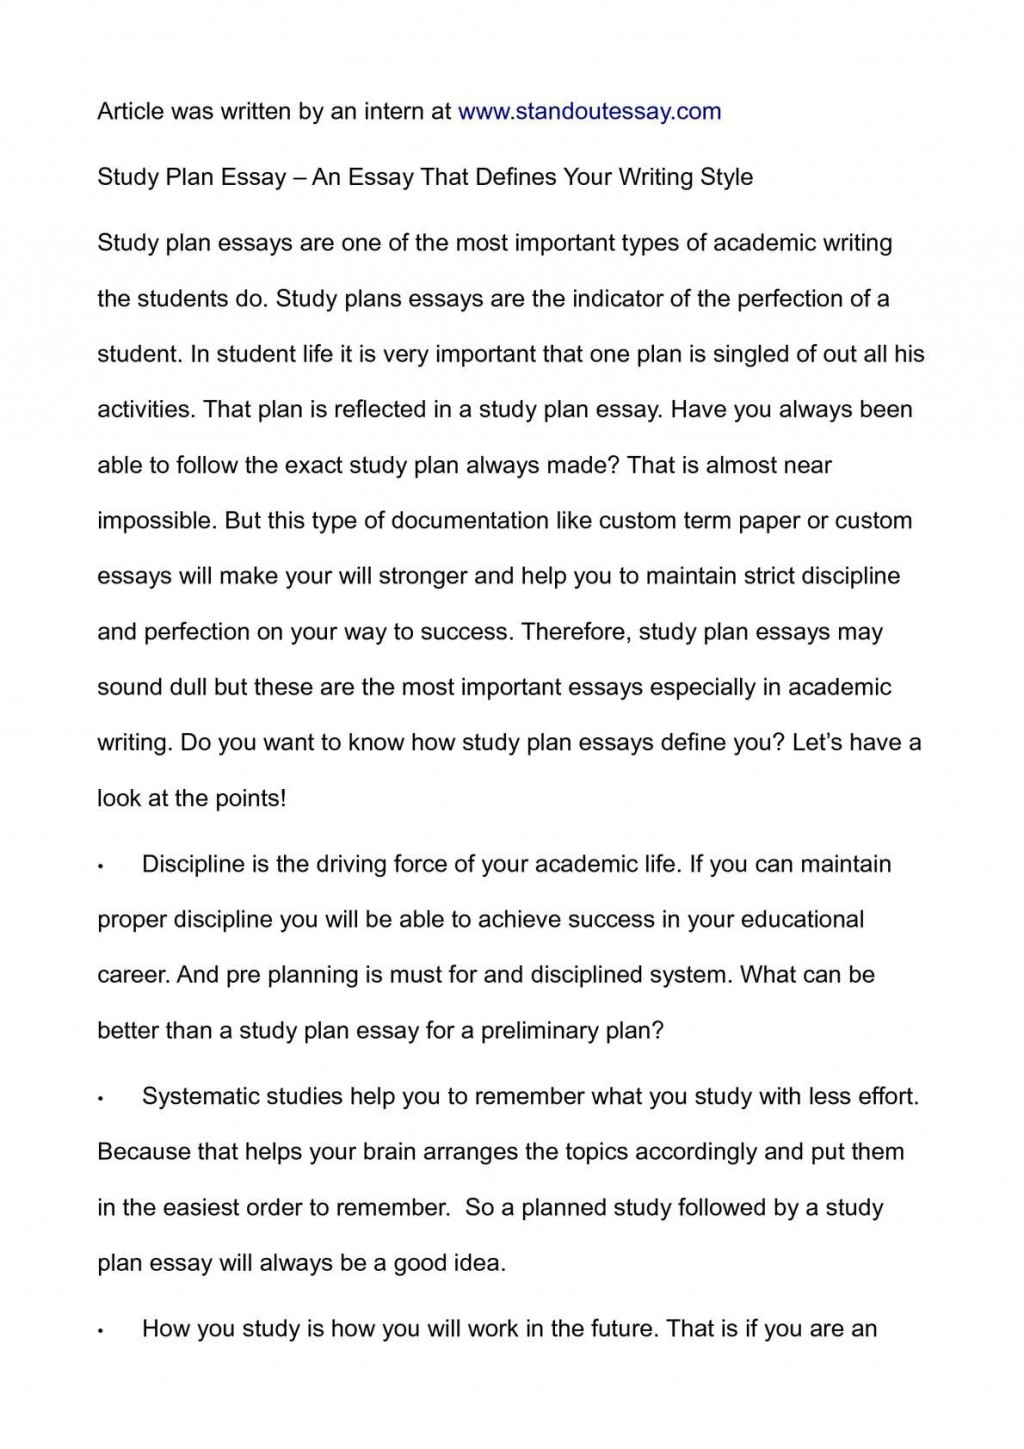 001 P1 Success Essay Wonderful Outline Formula In Hindi Education Is Key To Large